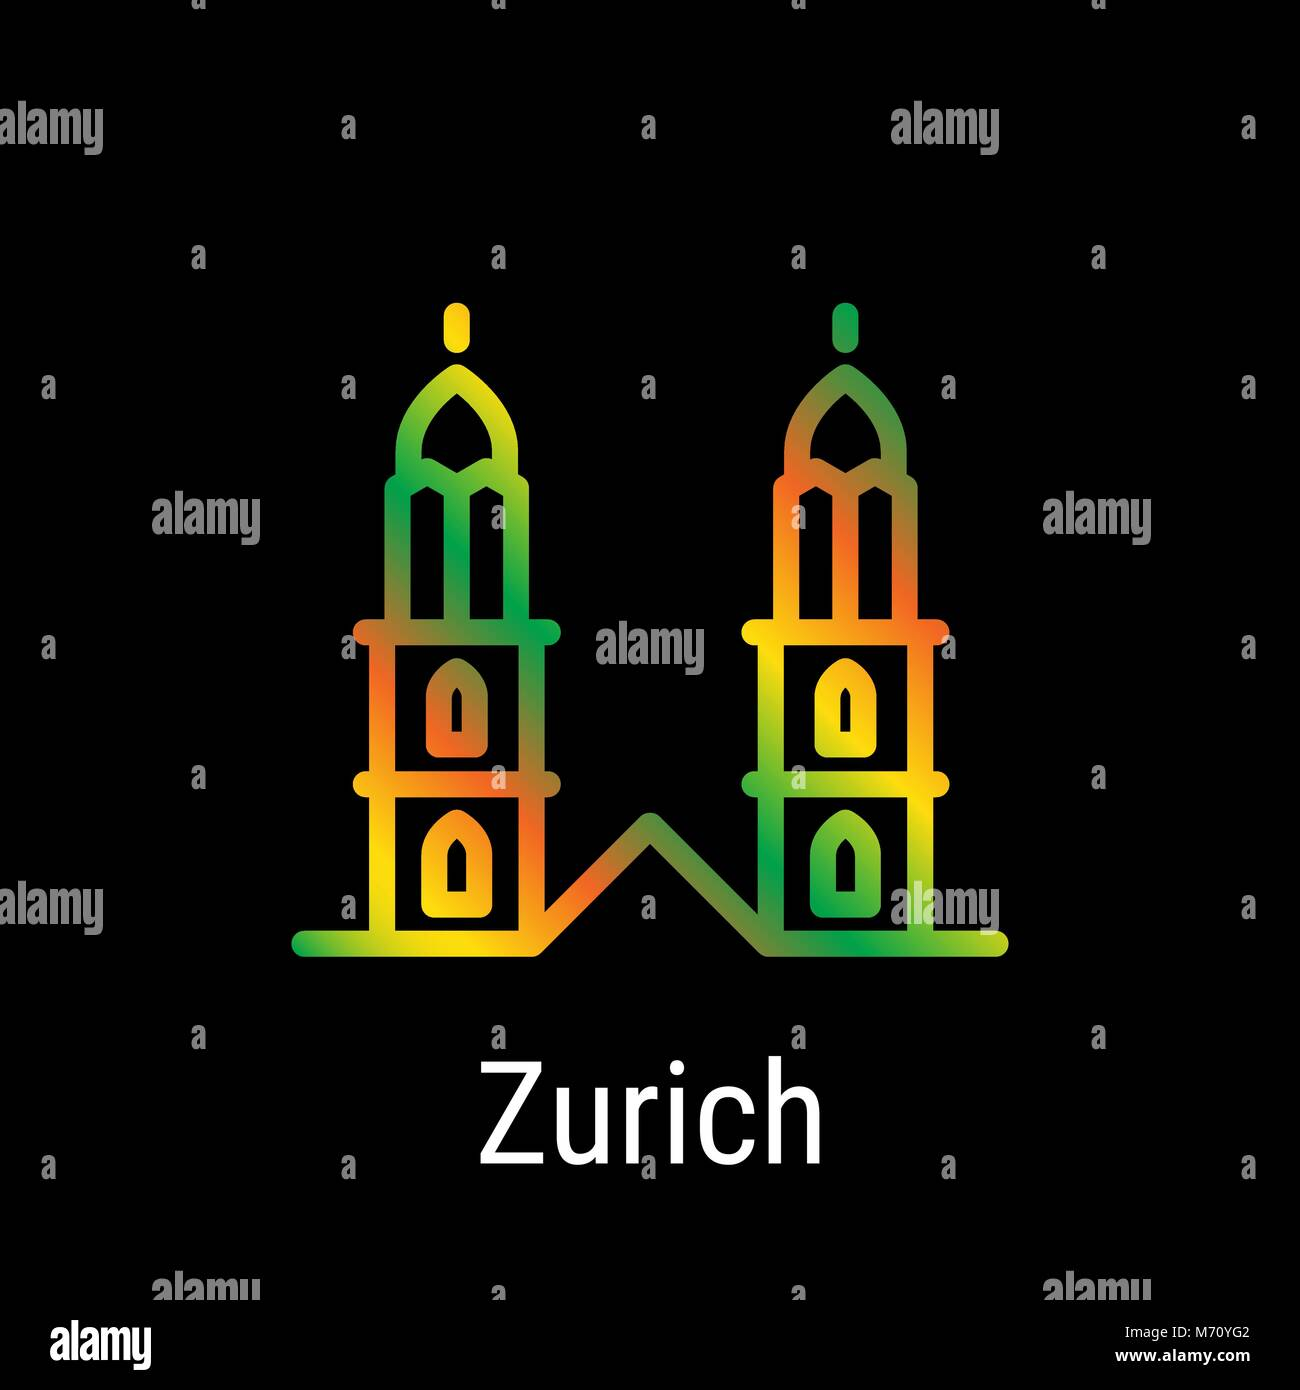 Zurich, Switzerland Vector Line Icon - Stock Vector